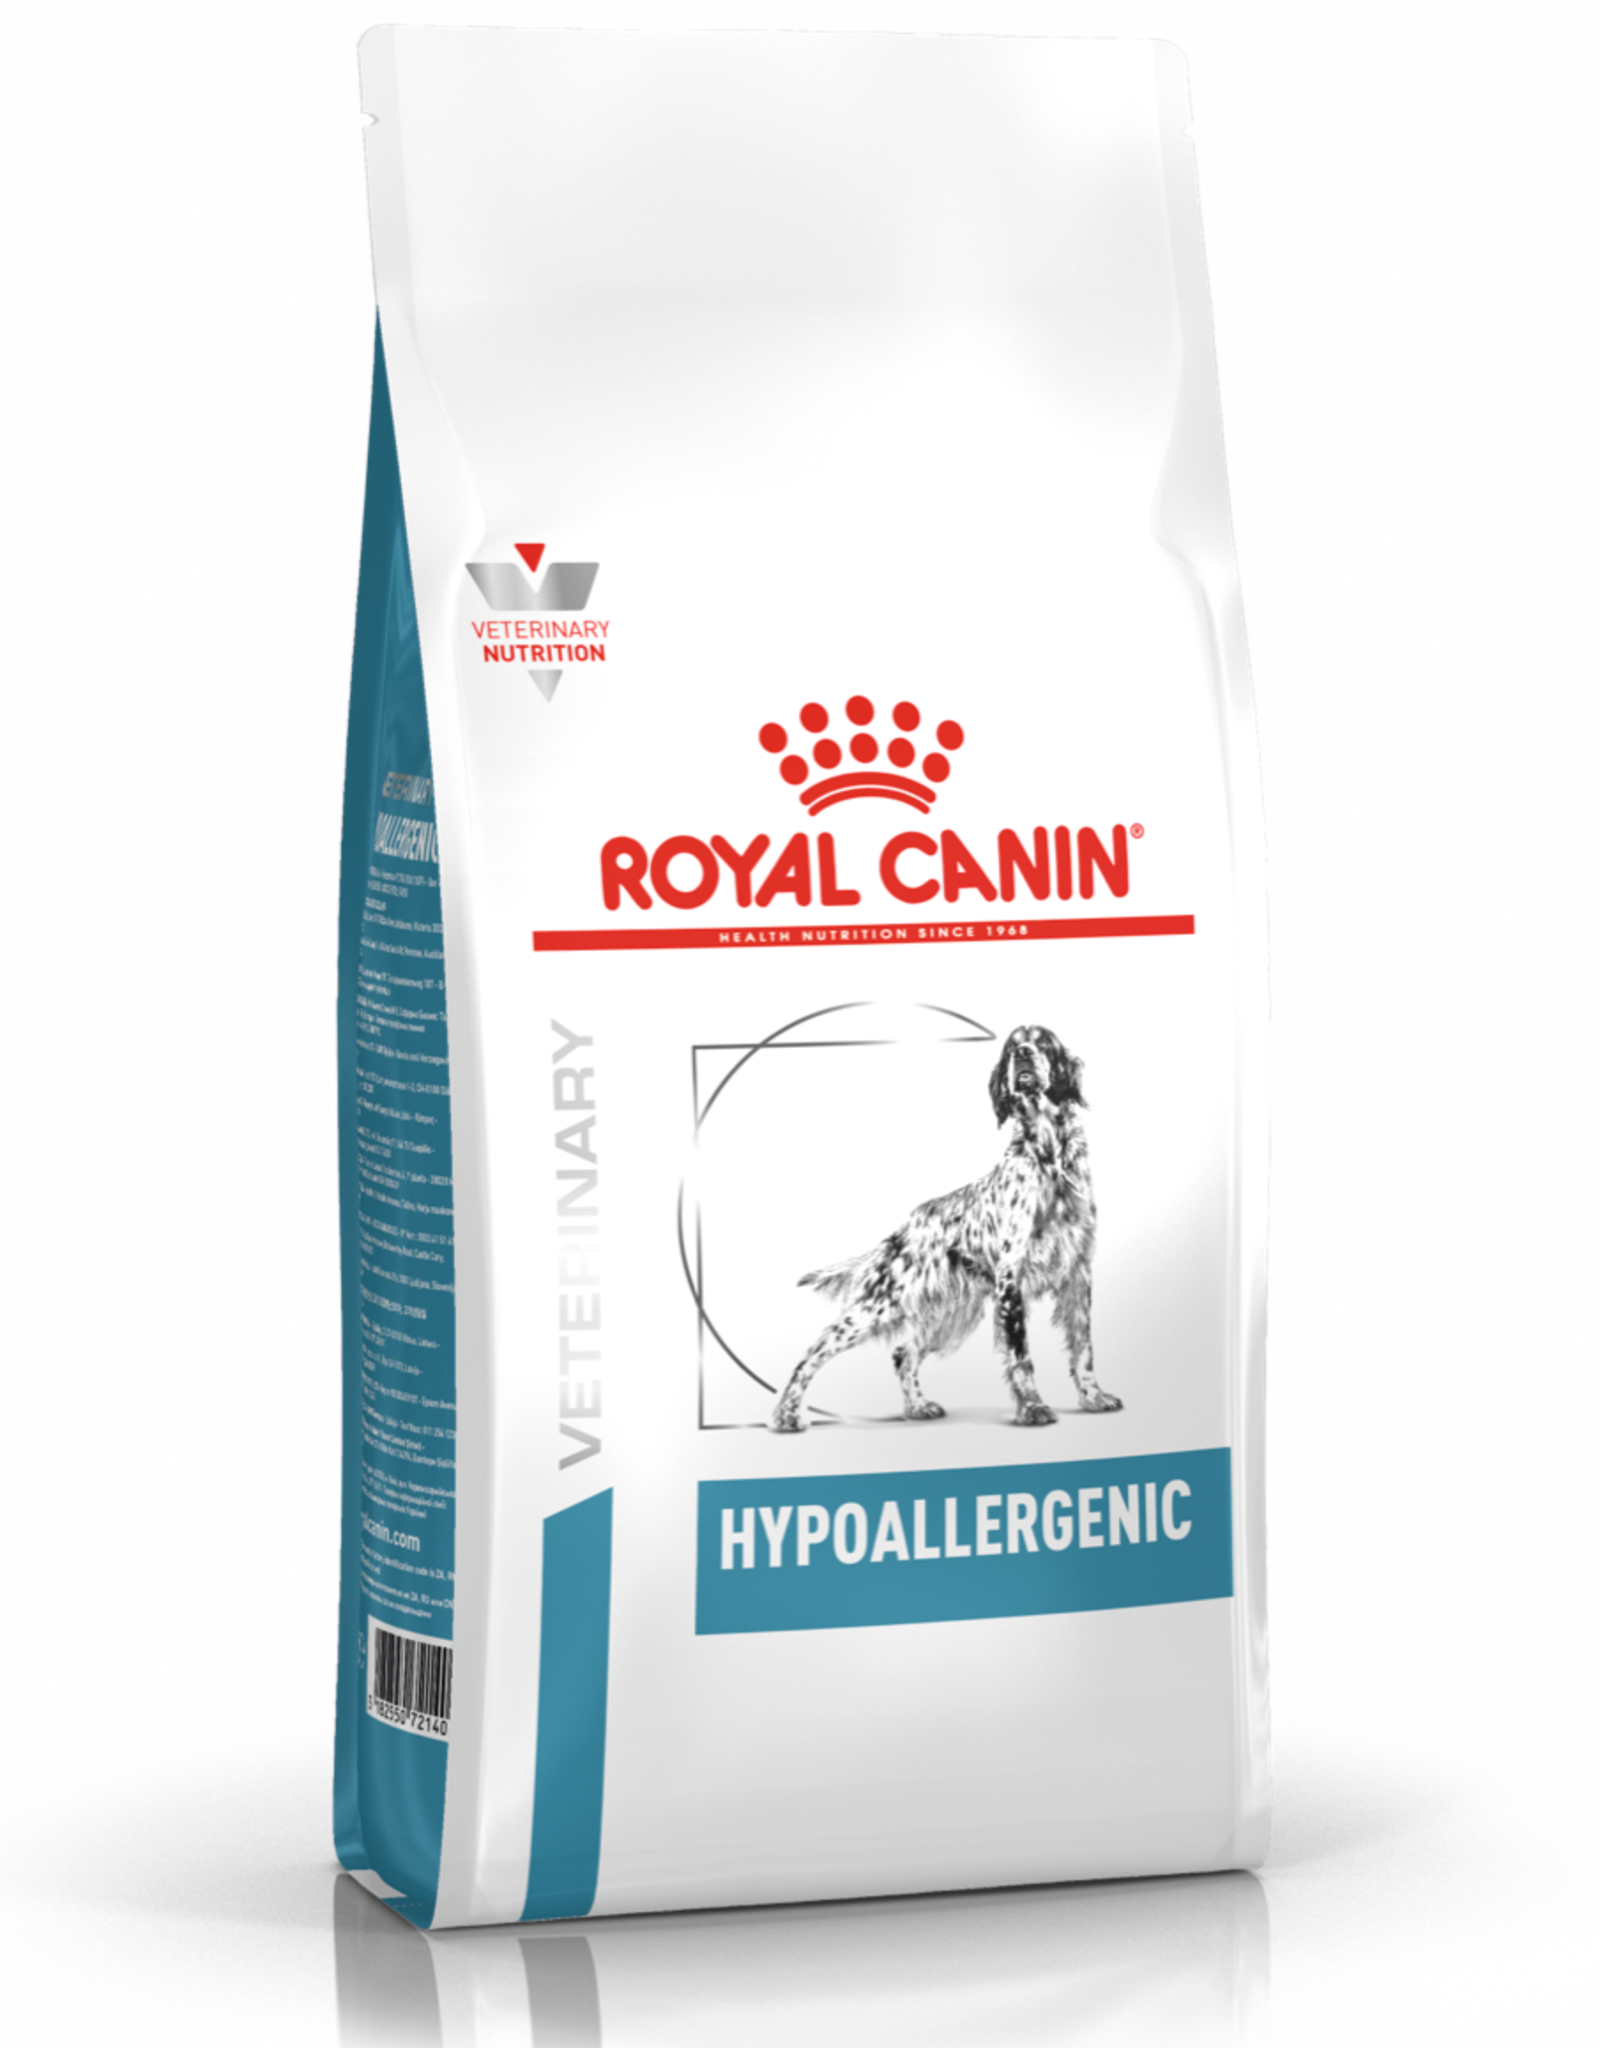 Royal Canin Royal Canin Hypoallergenic Chien 14kg